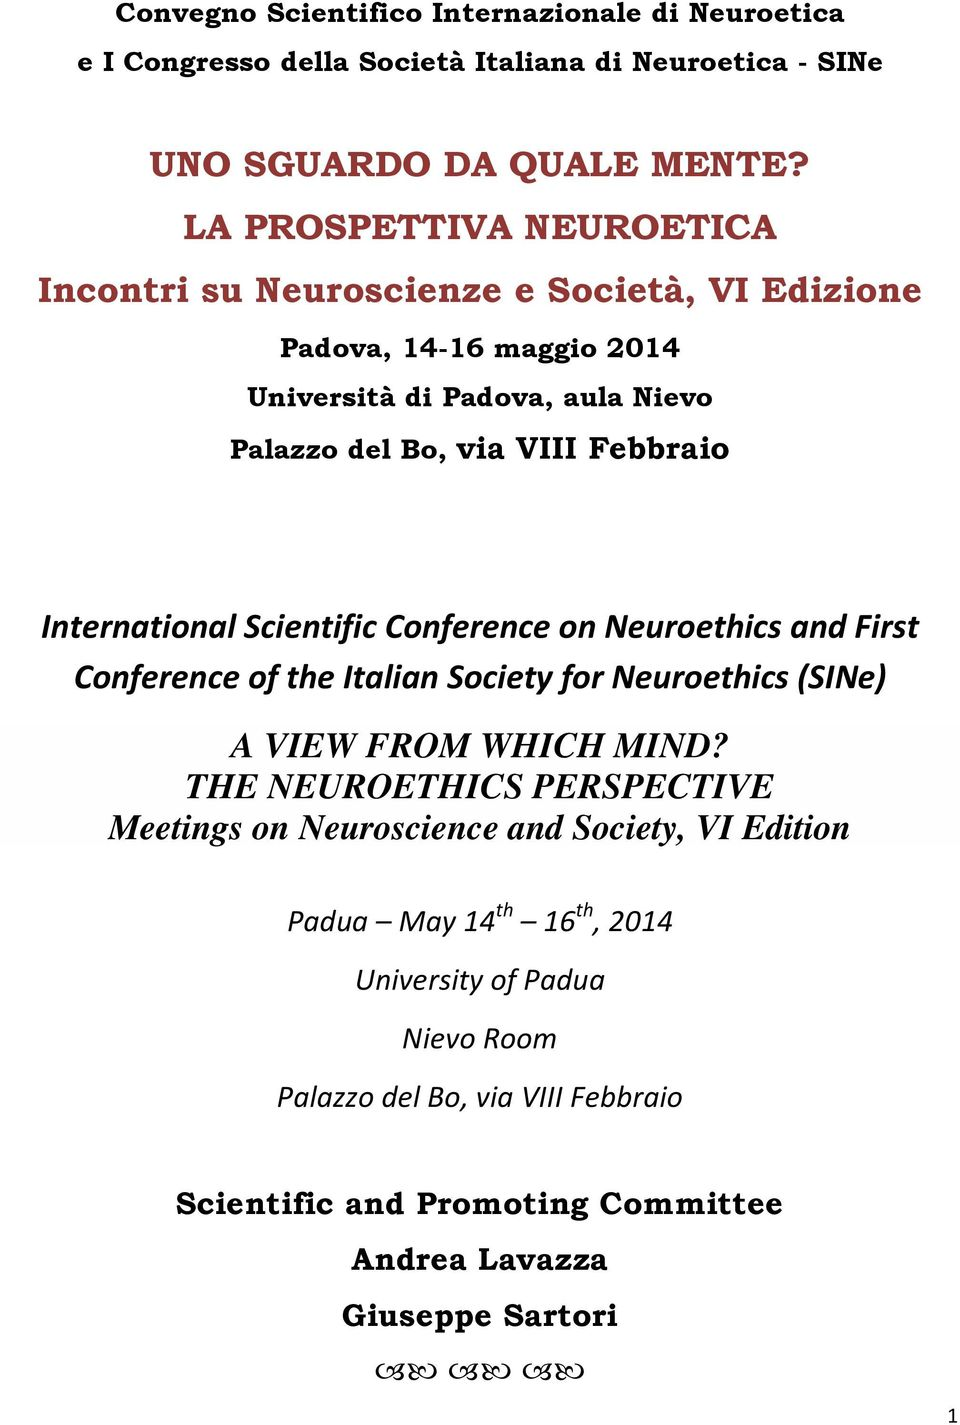 International Scientific Conference on Neuroethics and First Conference of the Italian Society for Neuroethics (SINe) A VIEW FROM WHICH MIND?